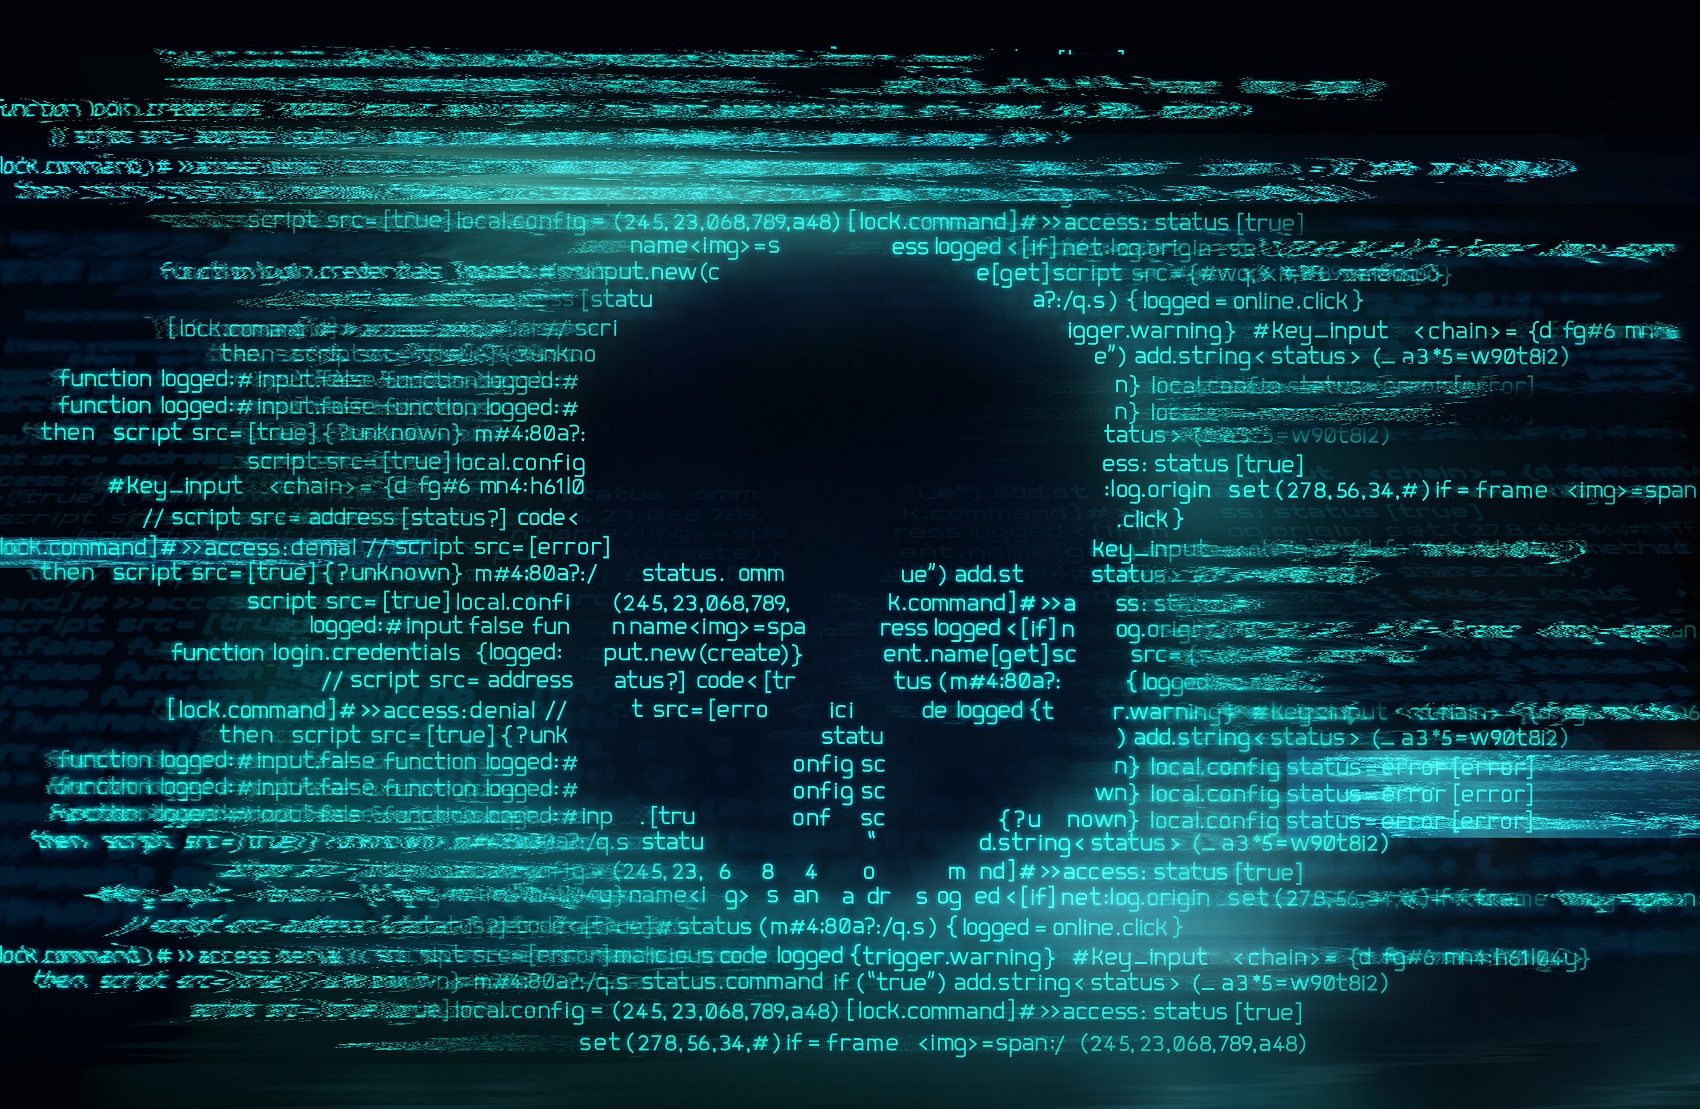 Cyber Security: What can we expect from 2019? TechNative